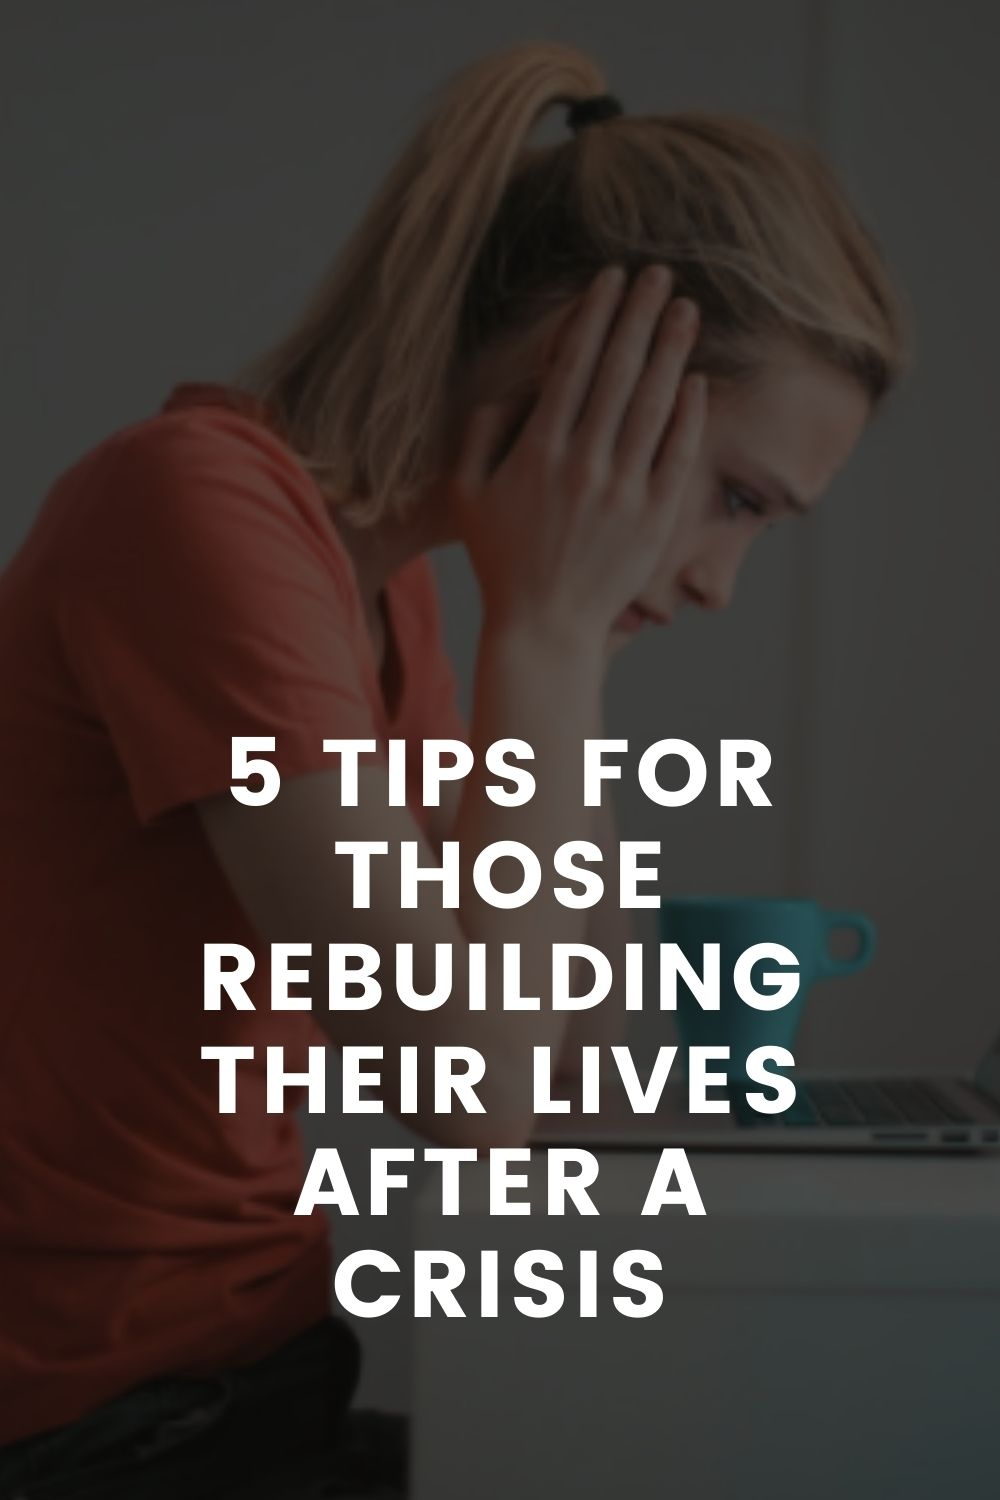 Fresh Start - 5 Tips For Those Rebuilding Their Lives After A Crisis